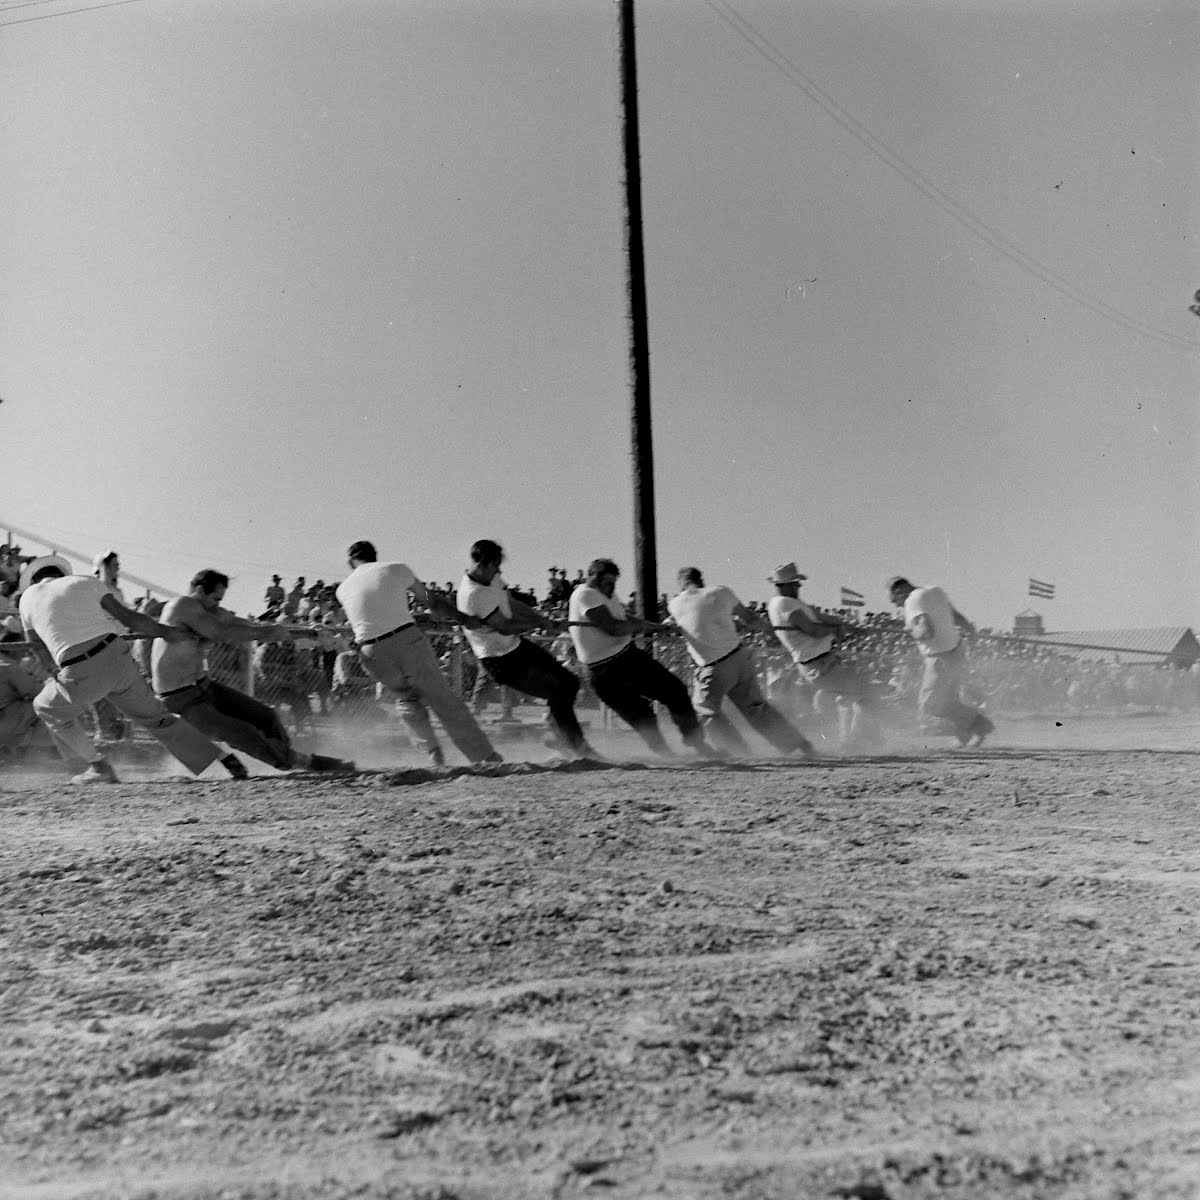 Antelope Valley Fair, Lanaster, California (Hay Loading Contest)